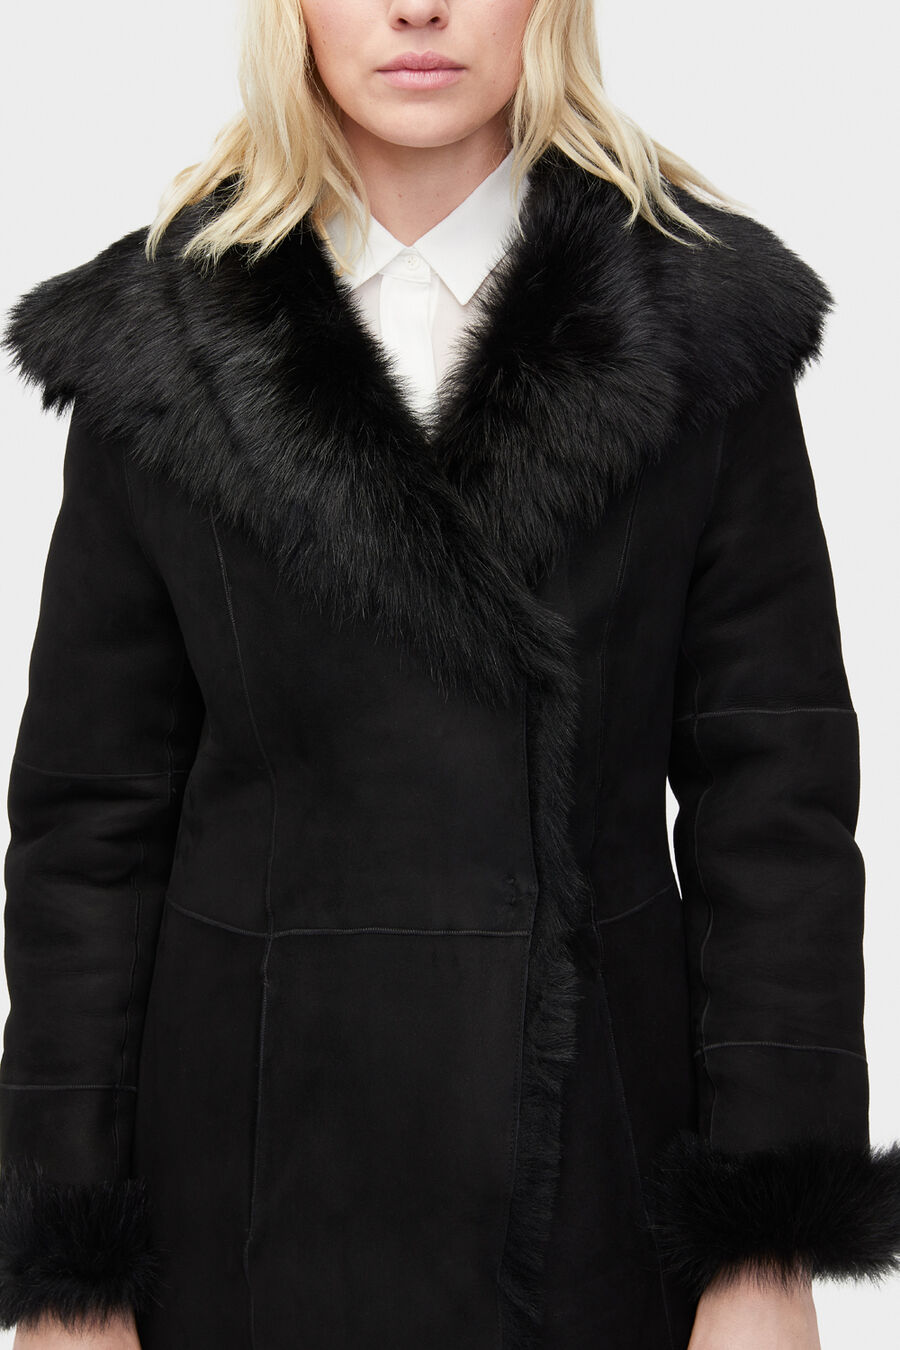 Vanesa Toscana Shearling Coat - Image 5 of 6